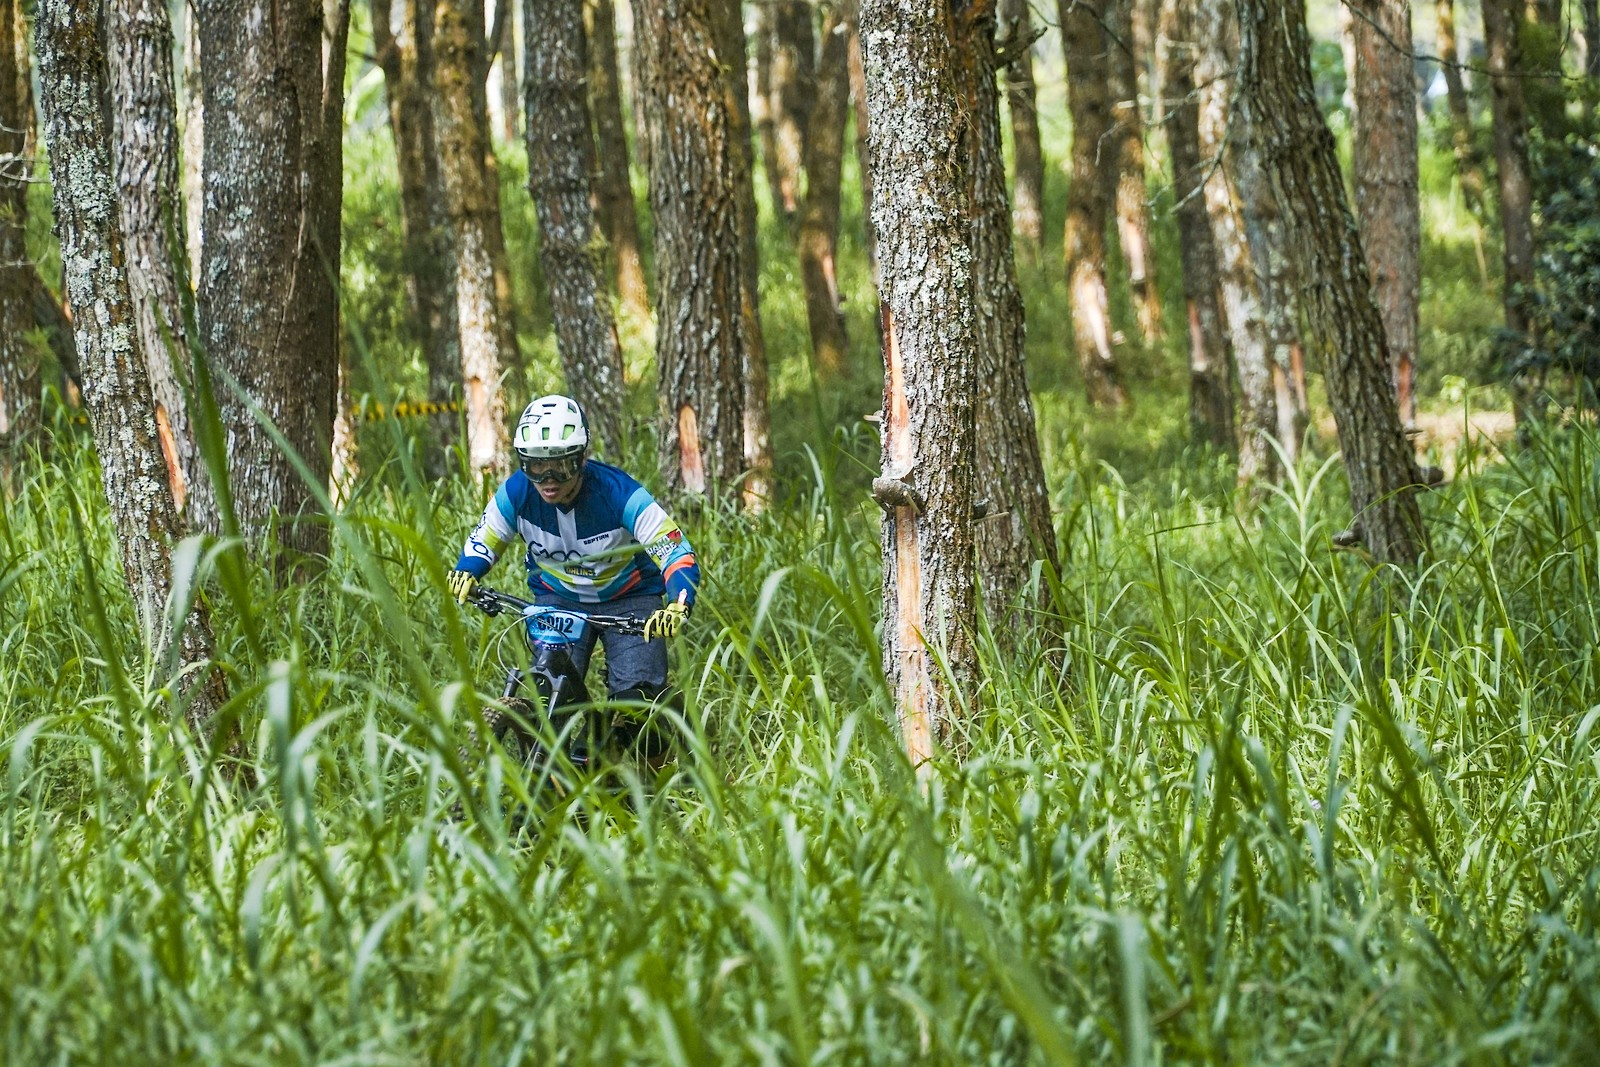 There is no road - RezaAkhmad - Mountain Biking Pictures - Vital MTB